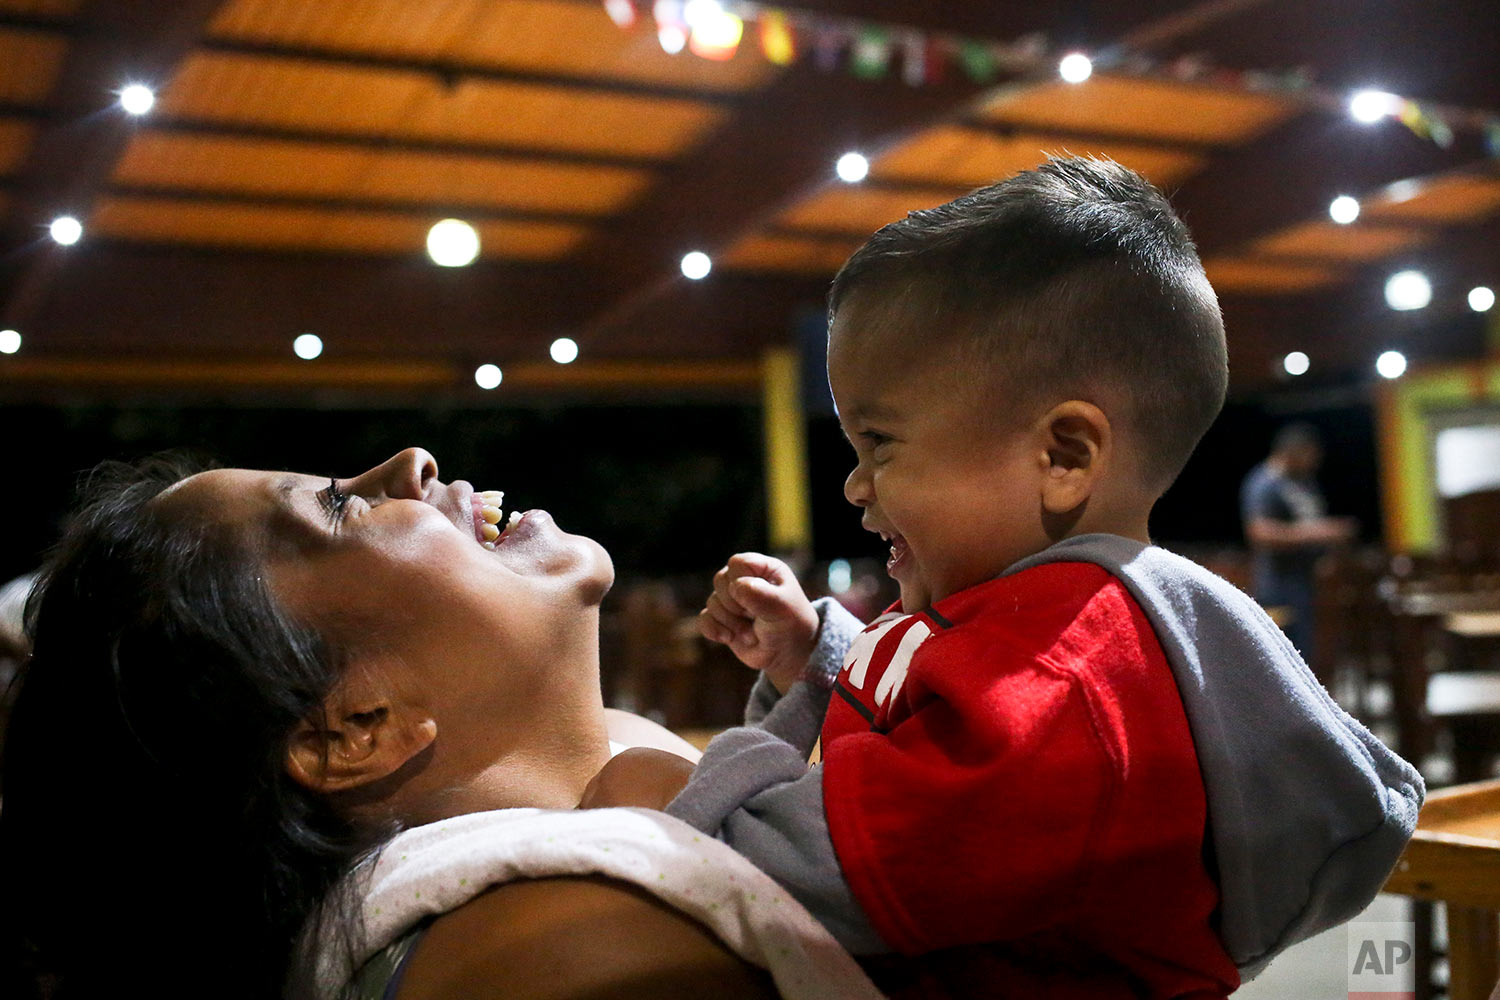 Adalicia Montecinos holds her 1-year-old son Johan, who became a poster child for the U.S. policy of separating immigrants and their children, in Yojoa, Honduras, July 20, 2018. Johan arrived in San Pedro Sula and was reunited with his parents. Captured by Border Patrol agents in March, Johan's father was deported and the then 10-month-old remained at an Arizona shelter. (AP Photo/Esteban Felix)